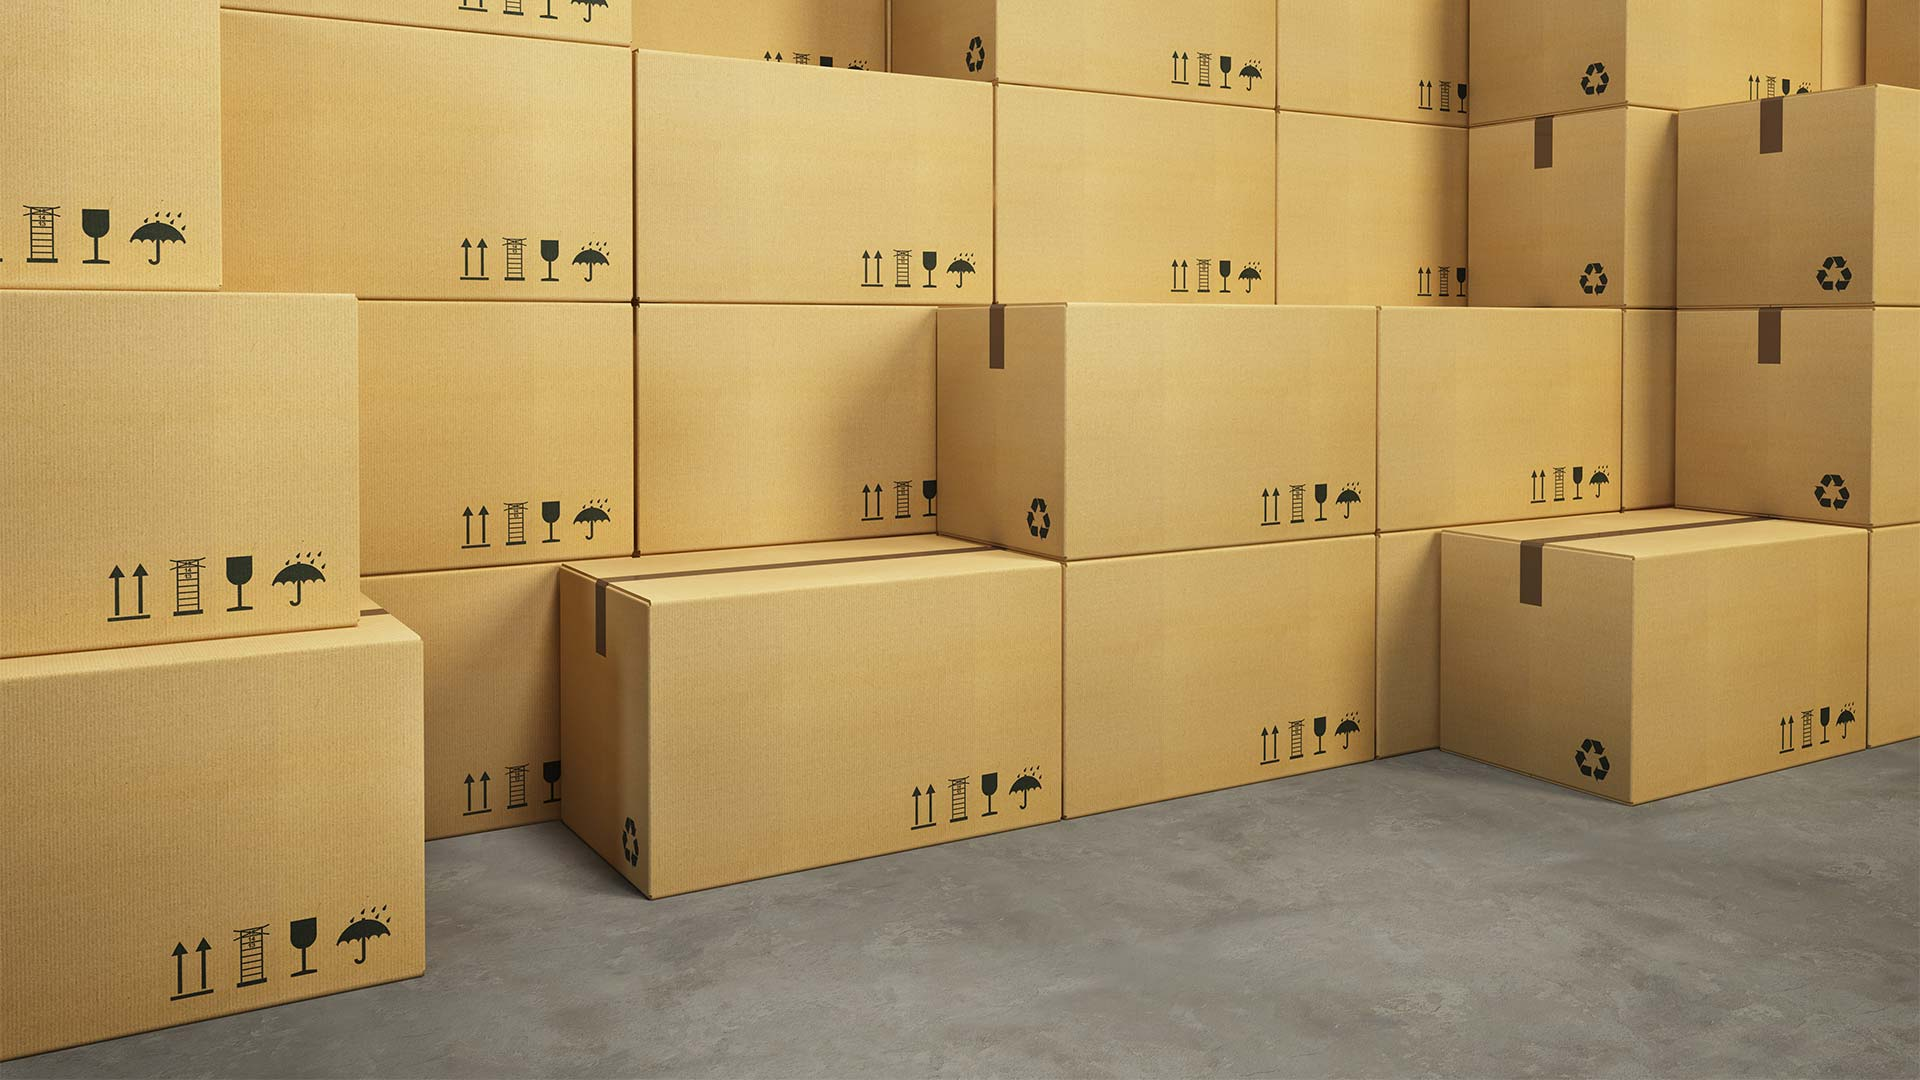 Smithfield Packing Supply Services : Packing services and supplies smooth move people portland or